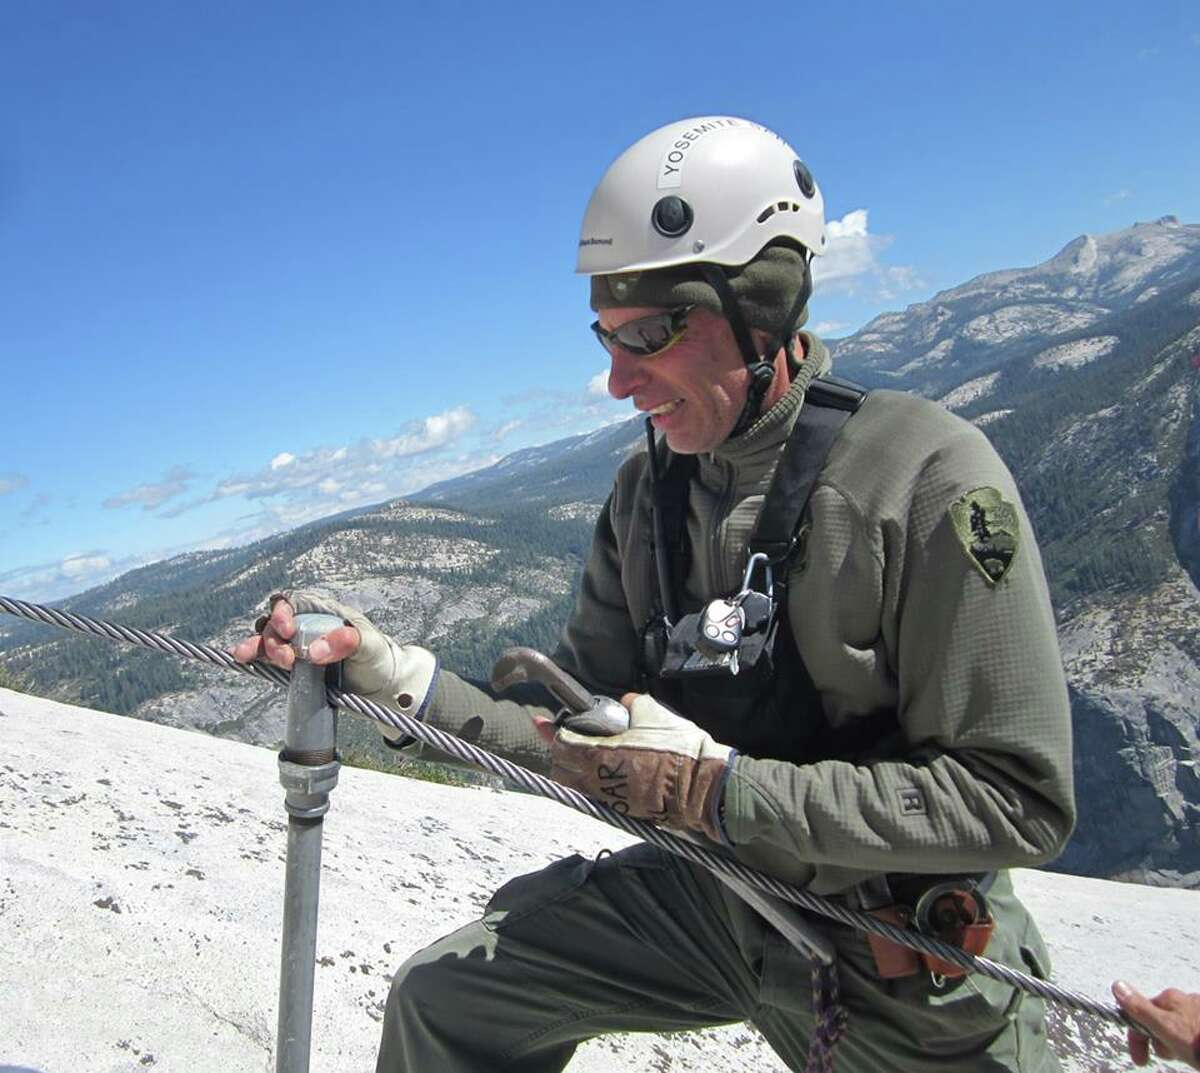 A Yosemite National Park official installing cables on Half Dome.